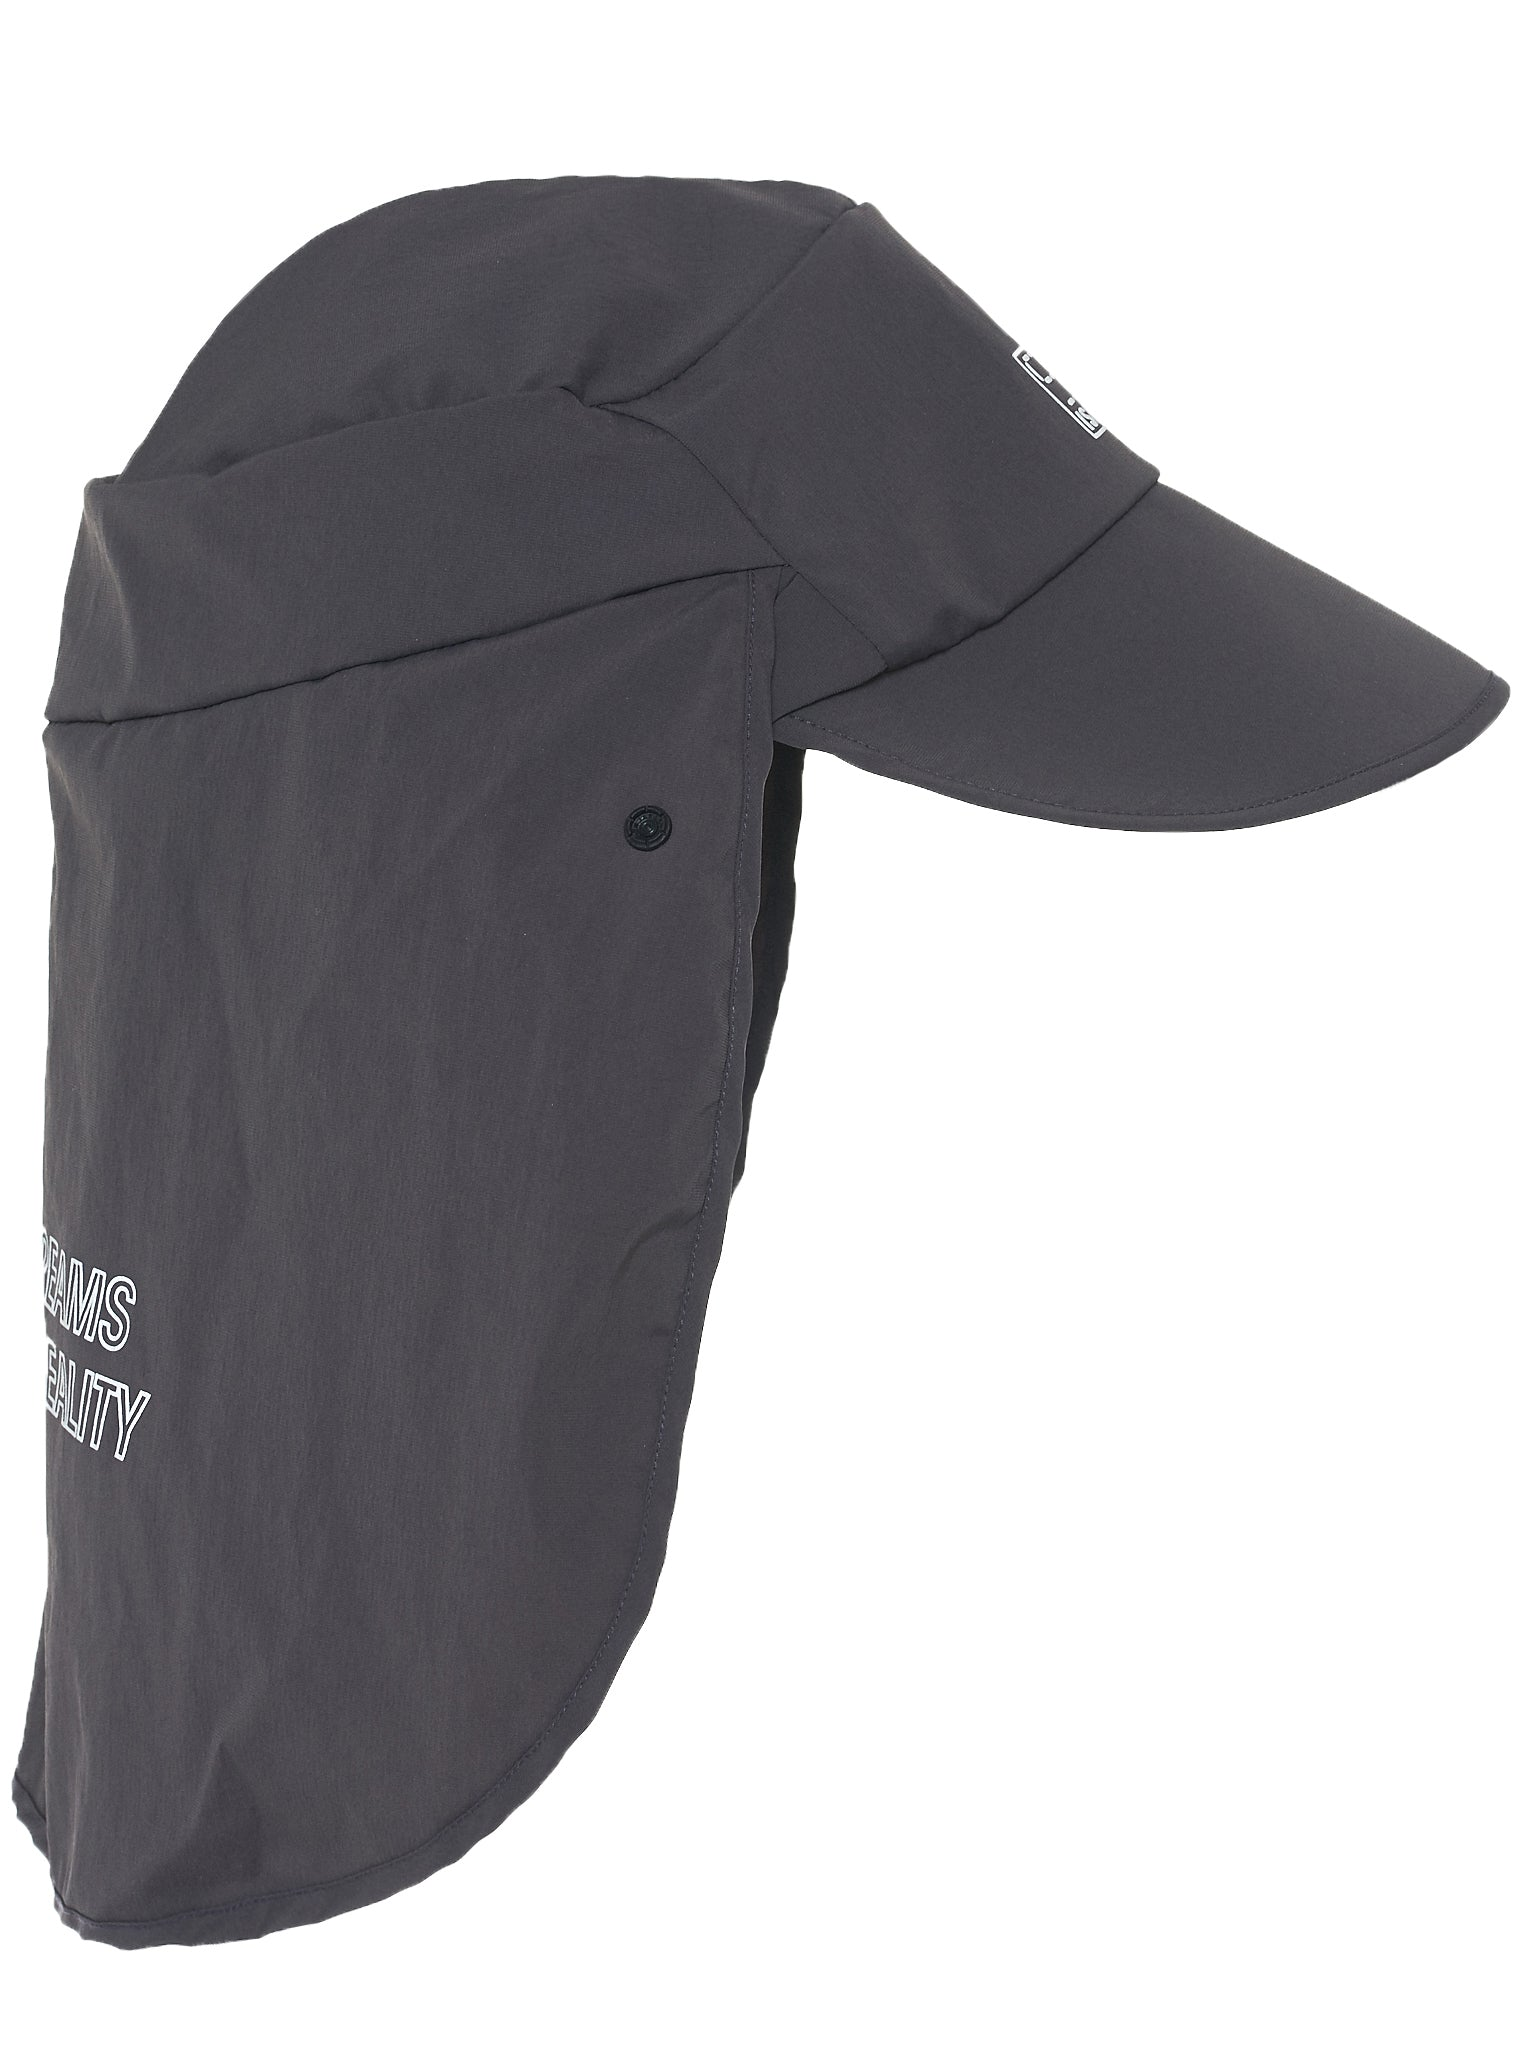 'Night To Dreams' Shielded Cap (NN11-ACC01-GRAY)